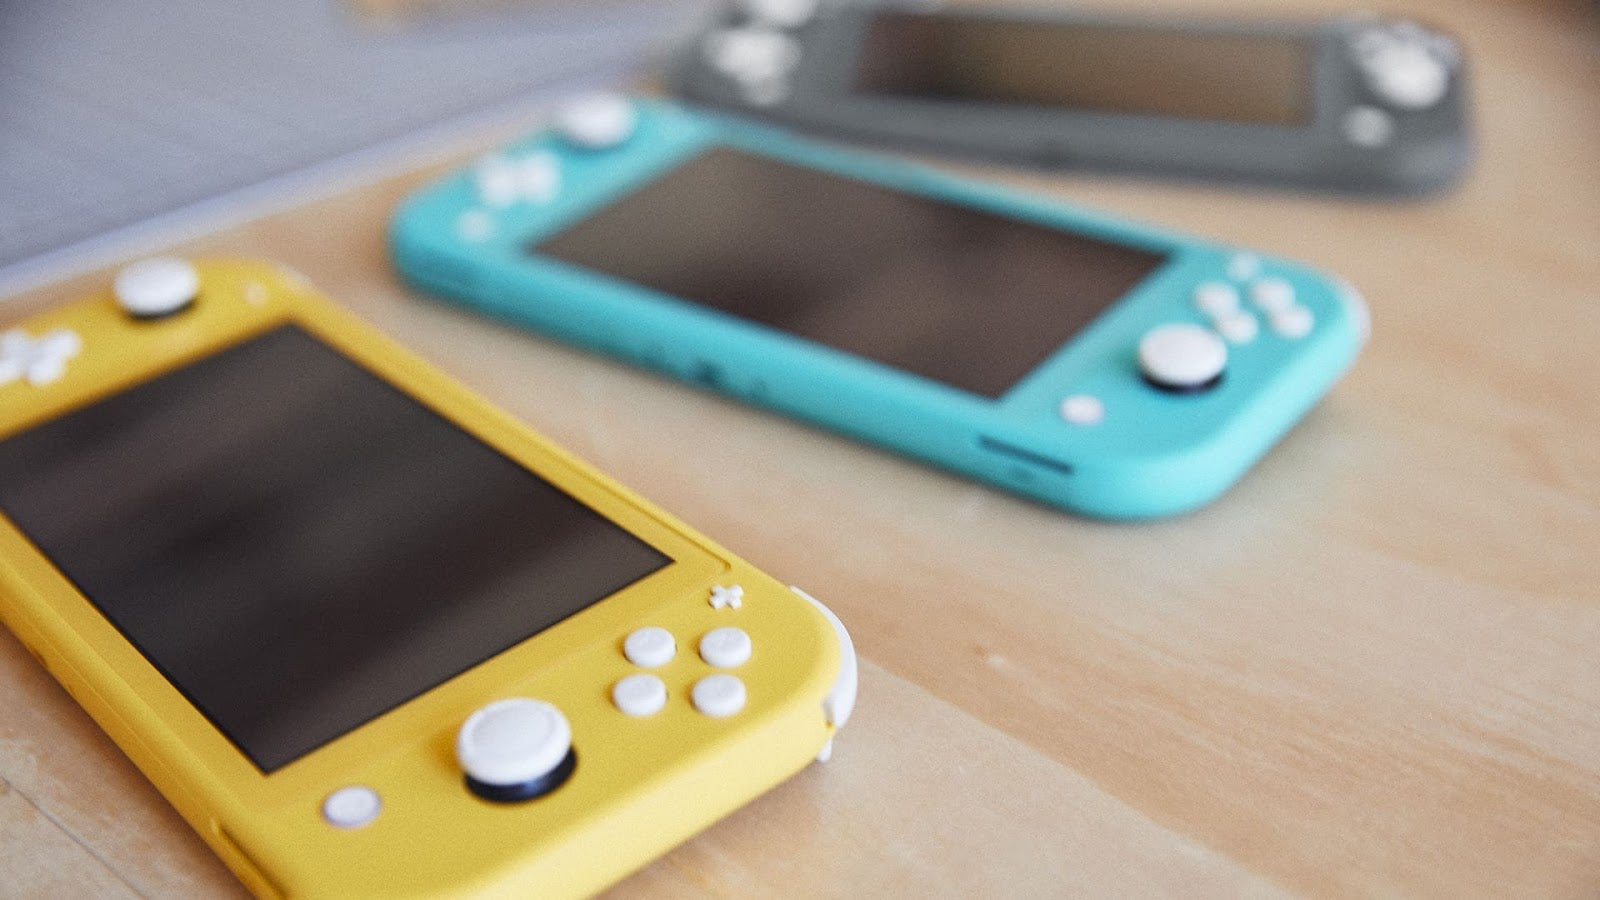 Hands-On With The Nintendo Switch Lite: Sturdy, Stylish, Comfortable